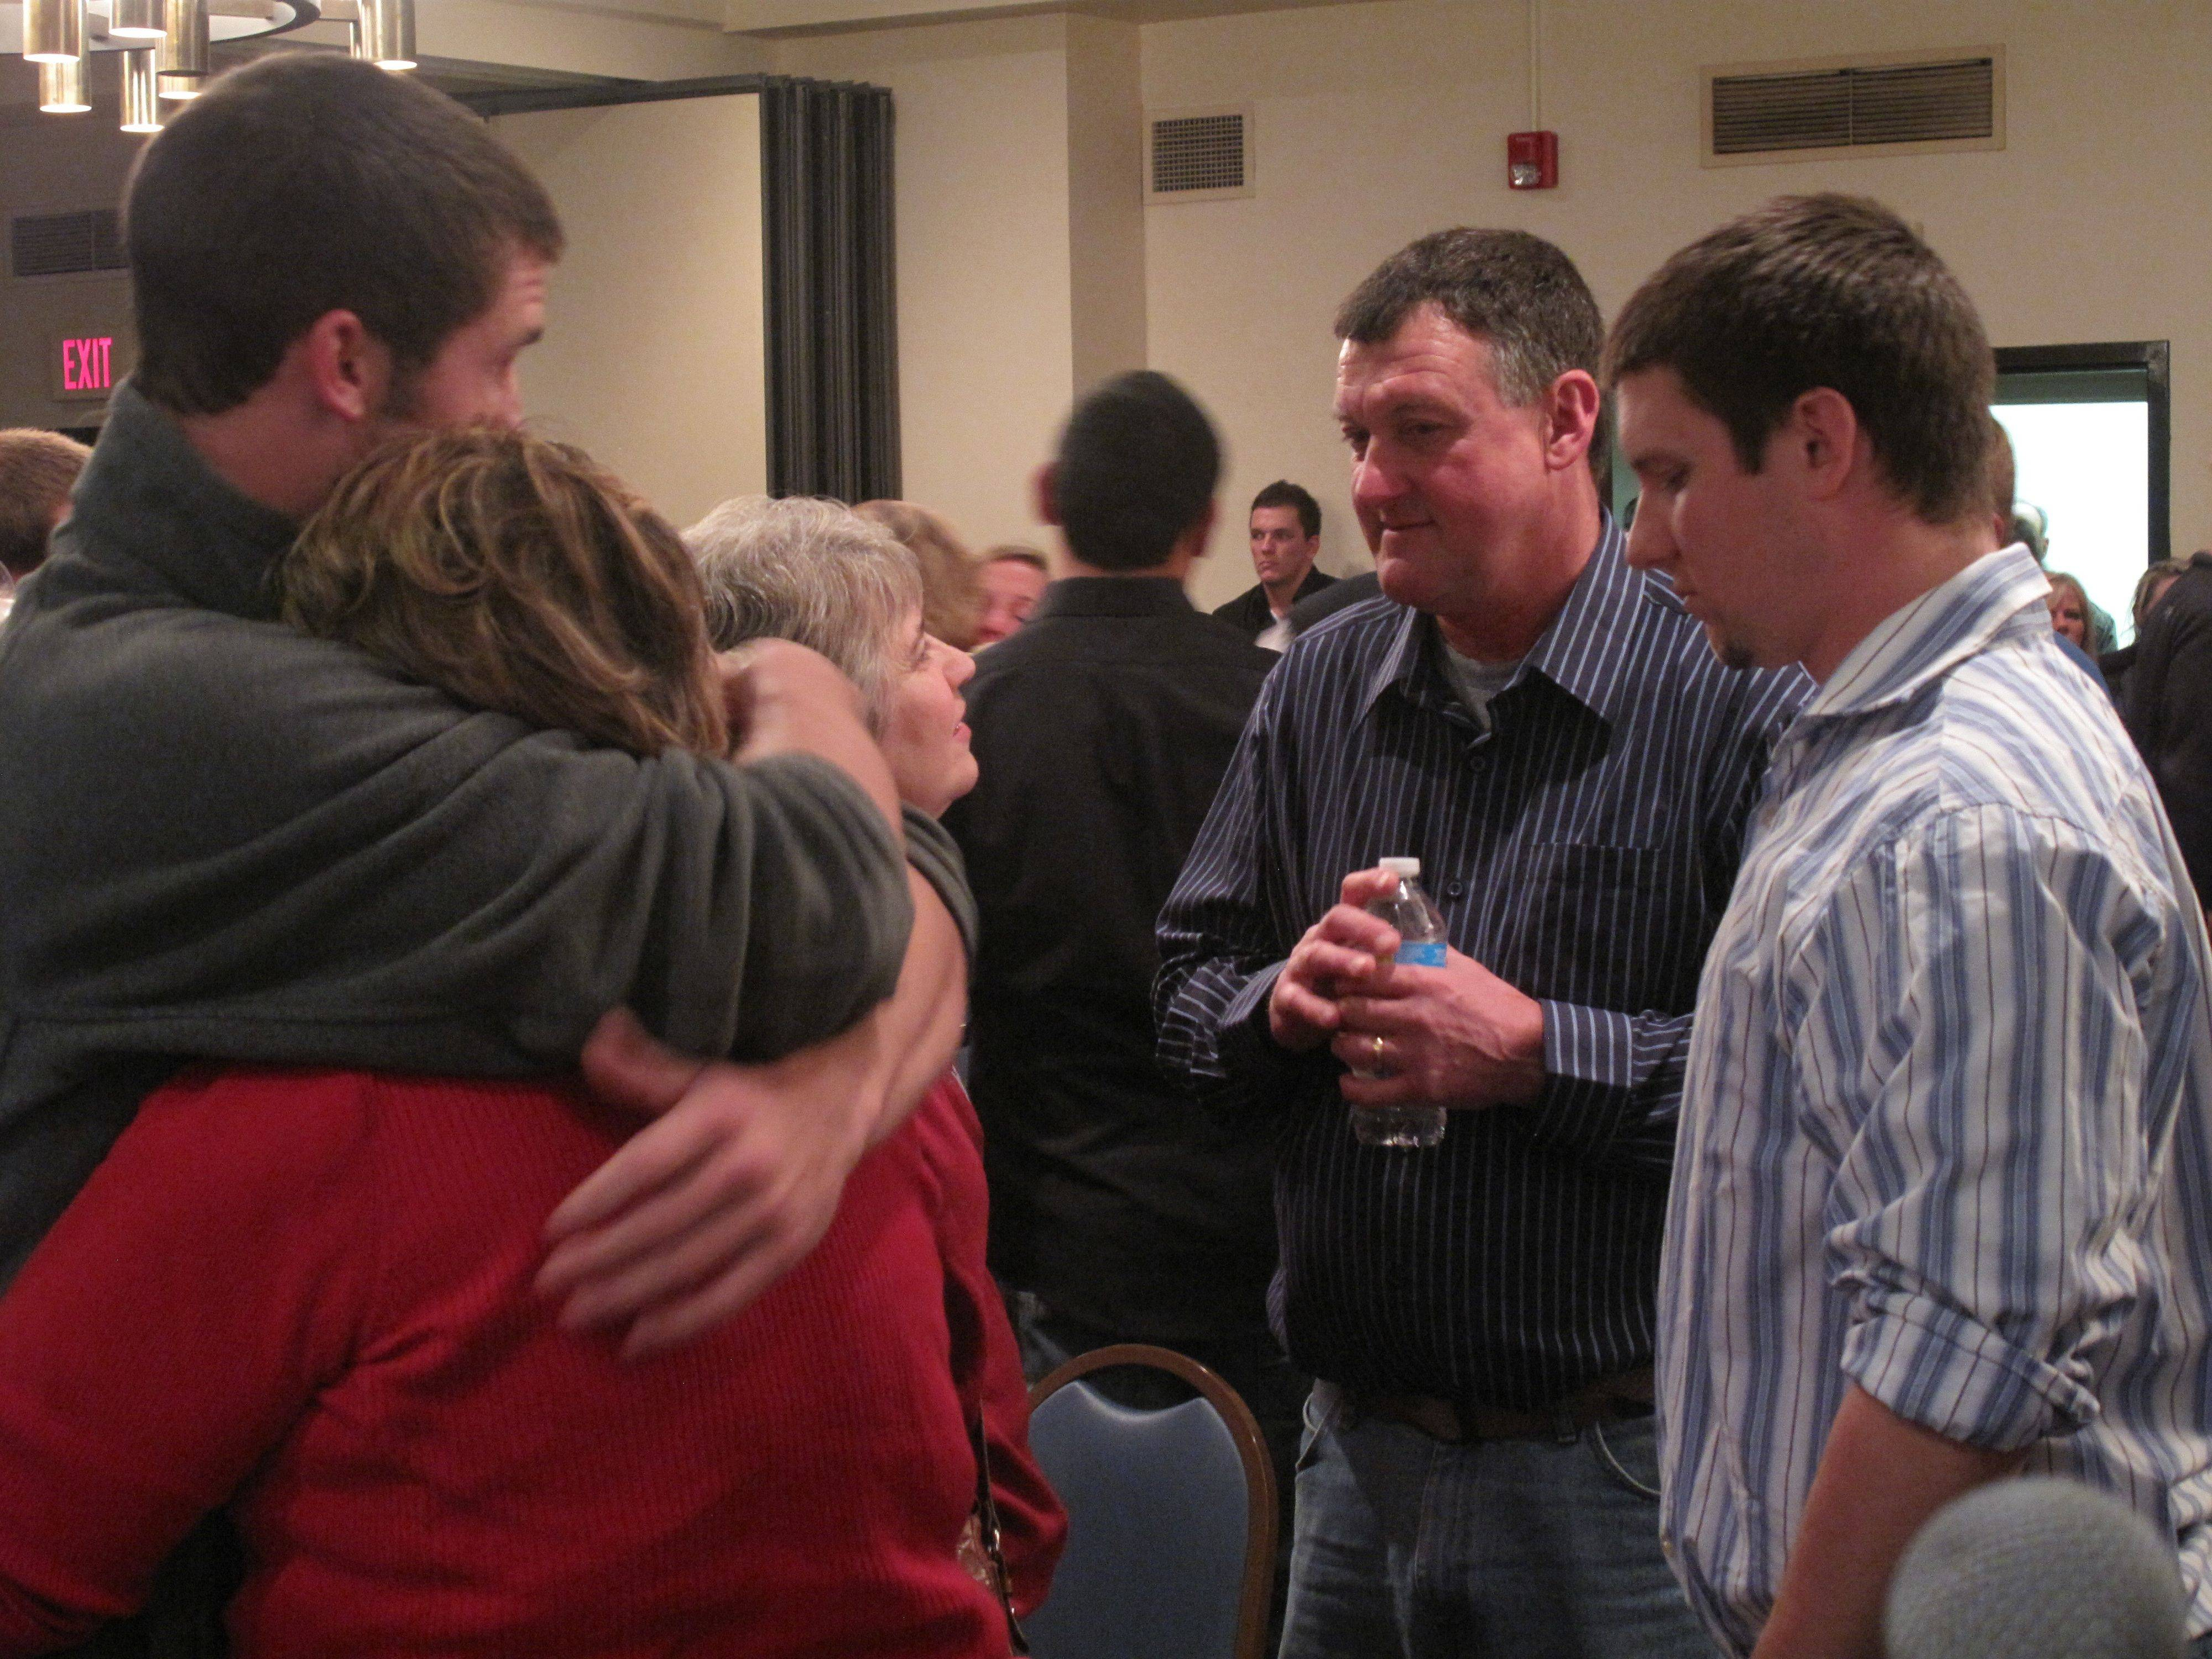 Shaun Wild's mom receives a hug while a woman talks to his dad after a community gathering Saturday night at North Central College.